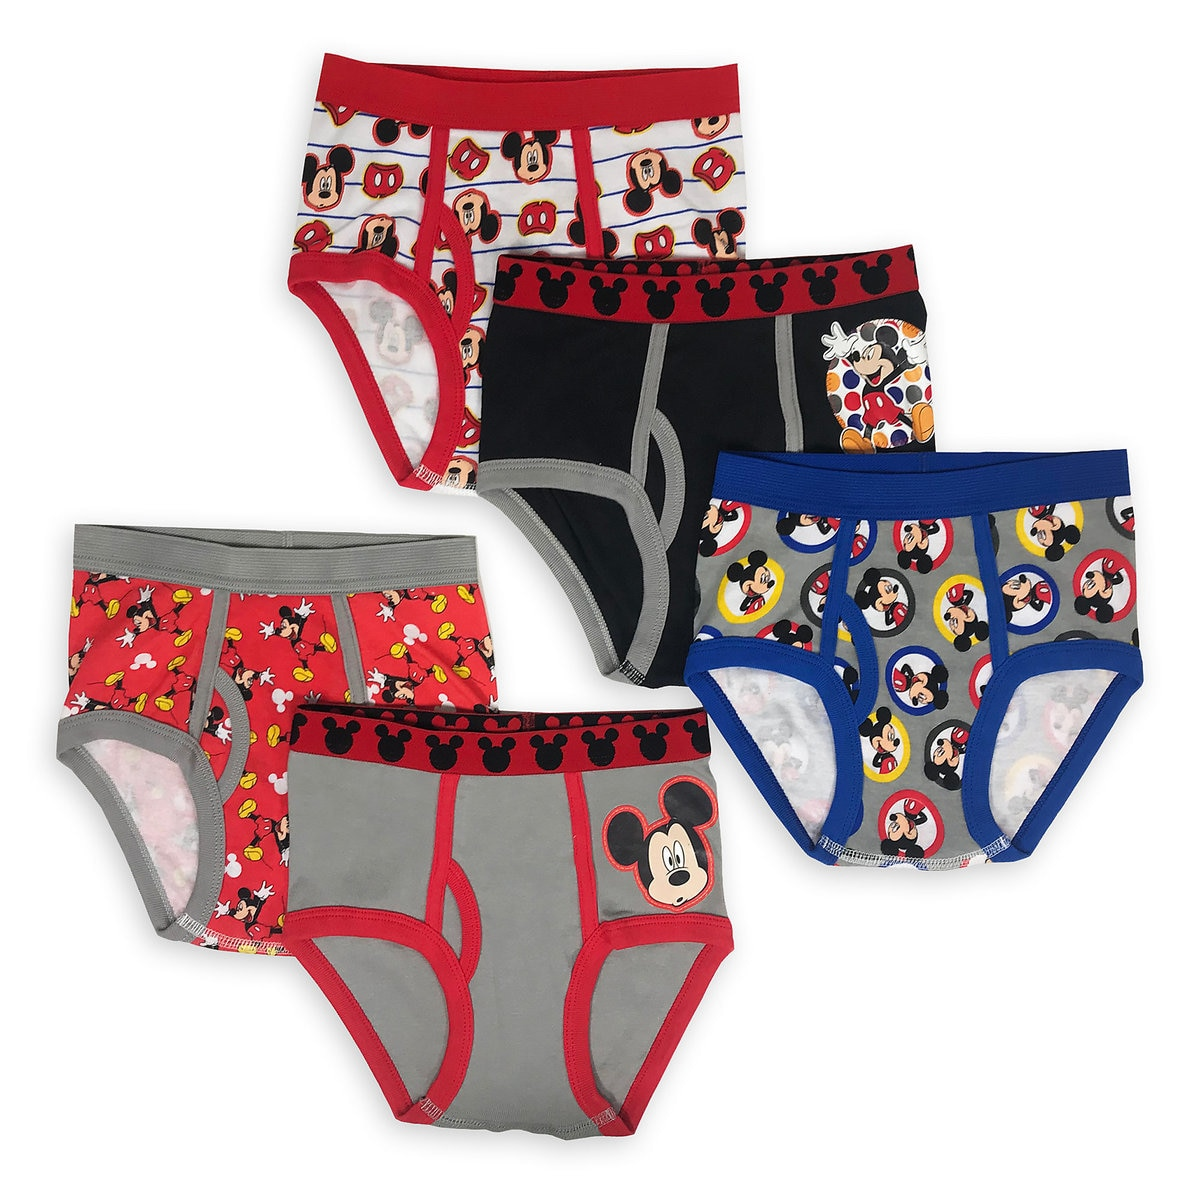 96ff0d8f03dbf Product Image of Mickey Mouse Underwear Set for Boys - 5-Pk # 1